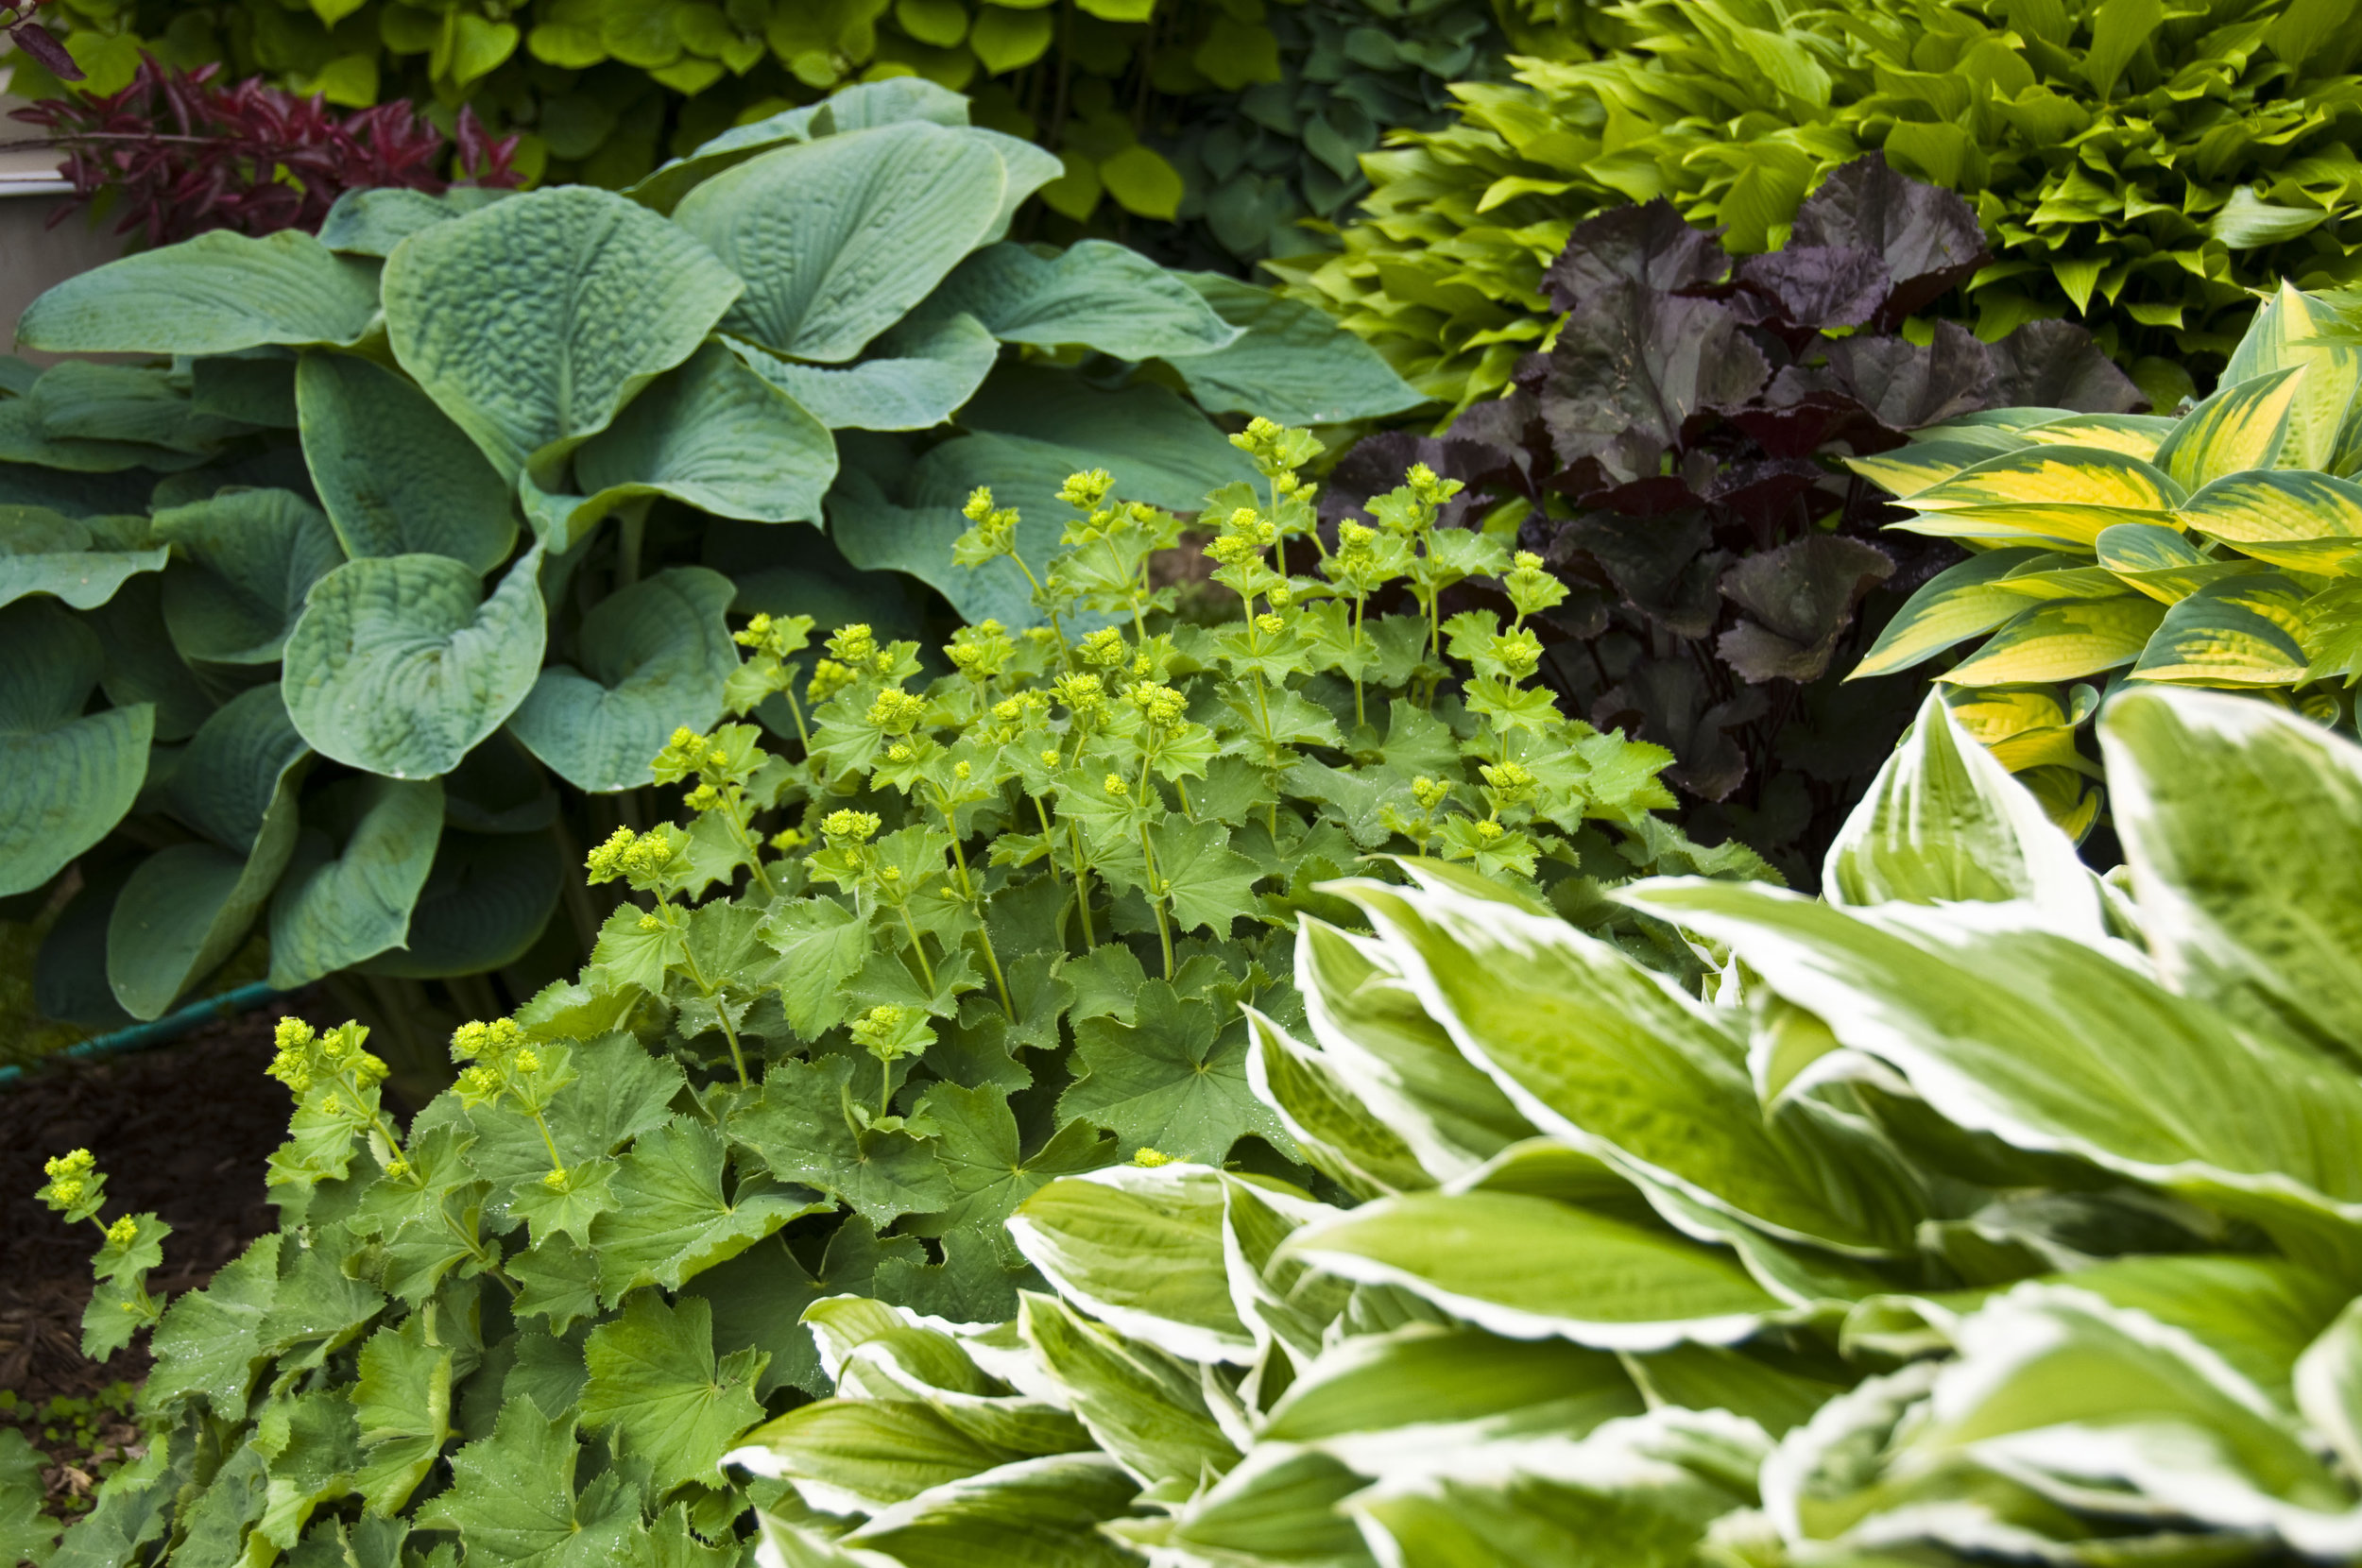 Read the new post on planting ideas for a shady garden here.  Thanks for reading!     http://haleandaltrinchamlife.co.uk/2017/04/gardening-supplement-planting-shade/